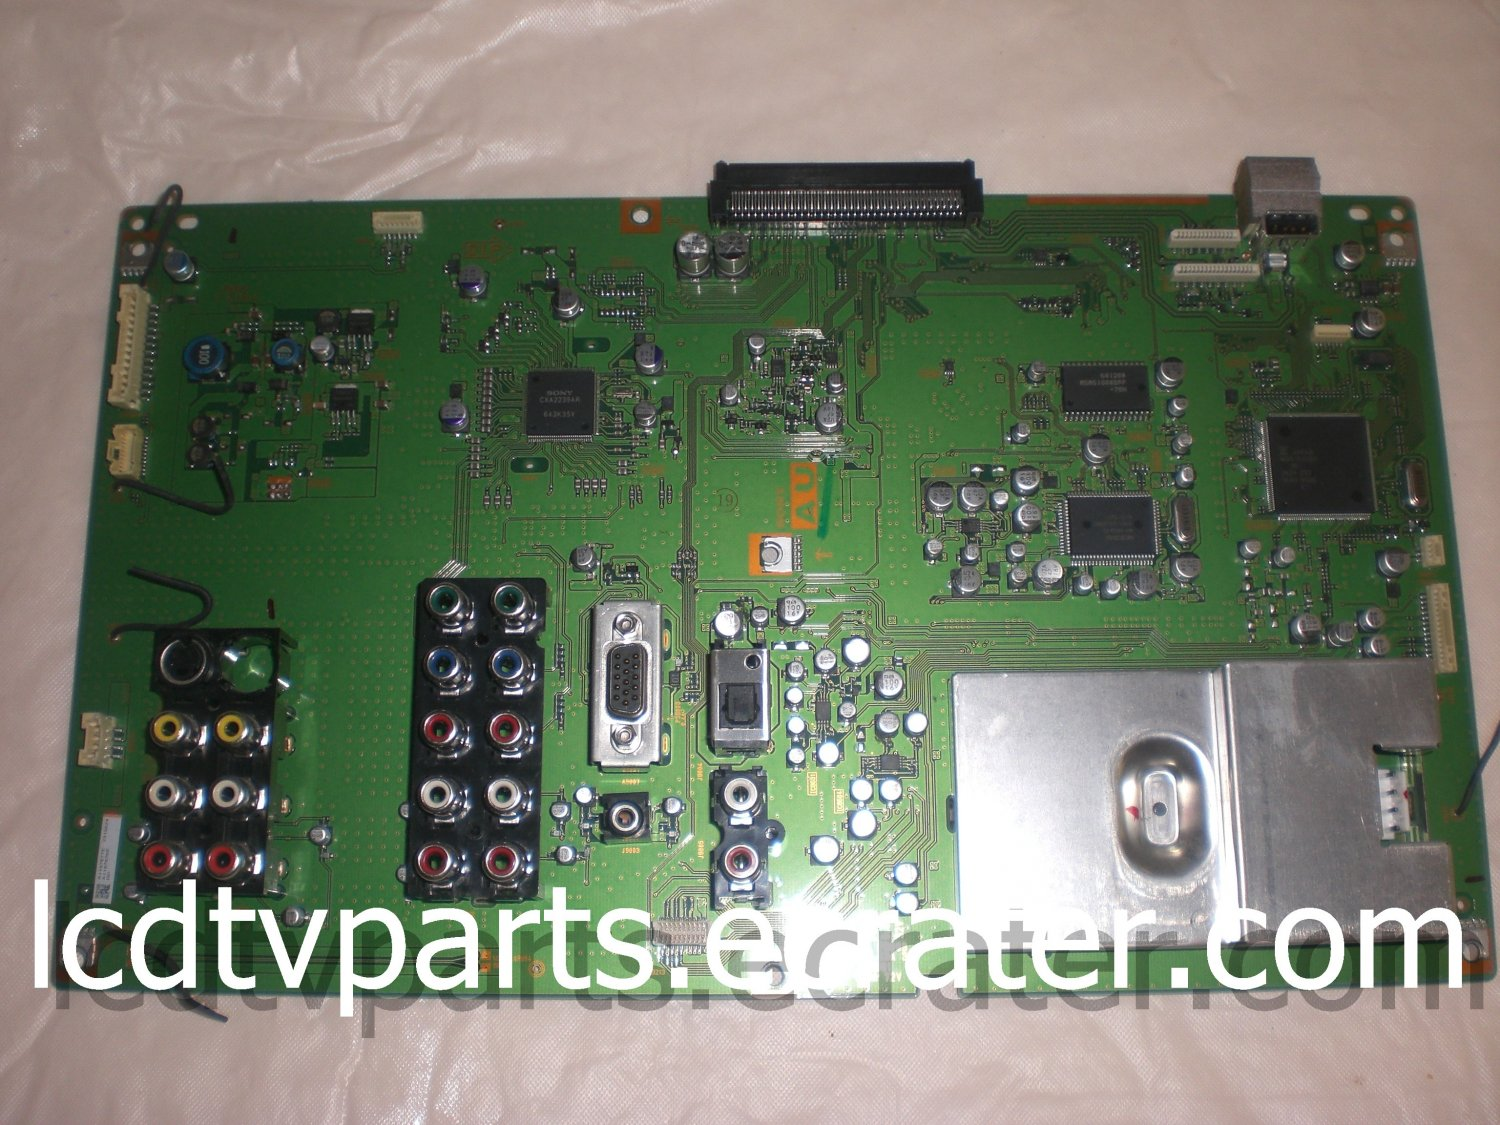 A-1212-254-A, A1212254A, A1197877E , A1197876E, AU Board For SONY KDL-46XBR2